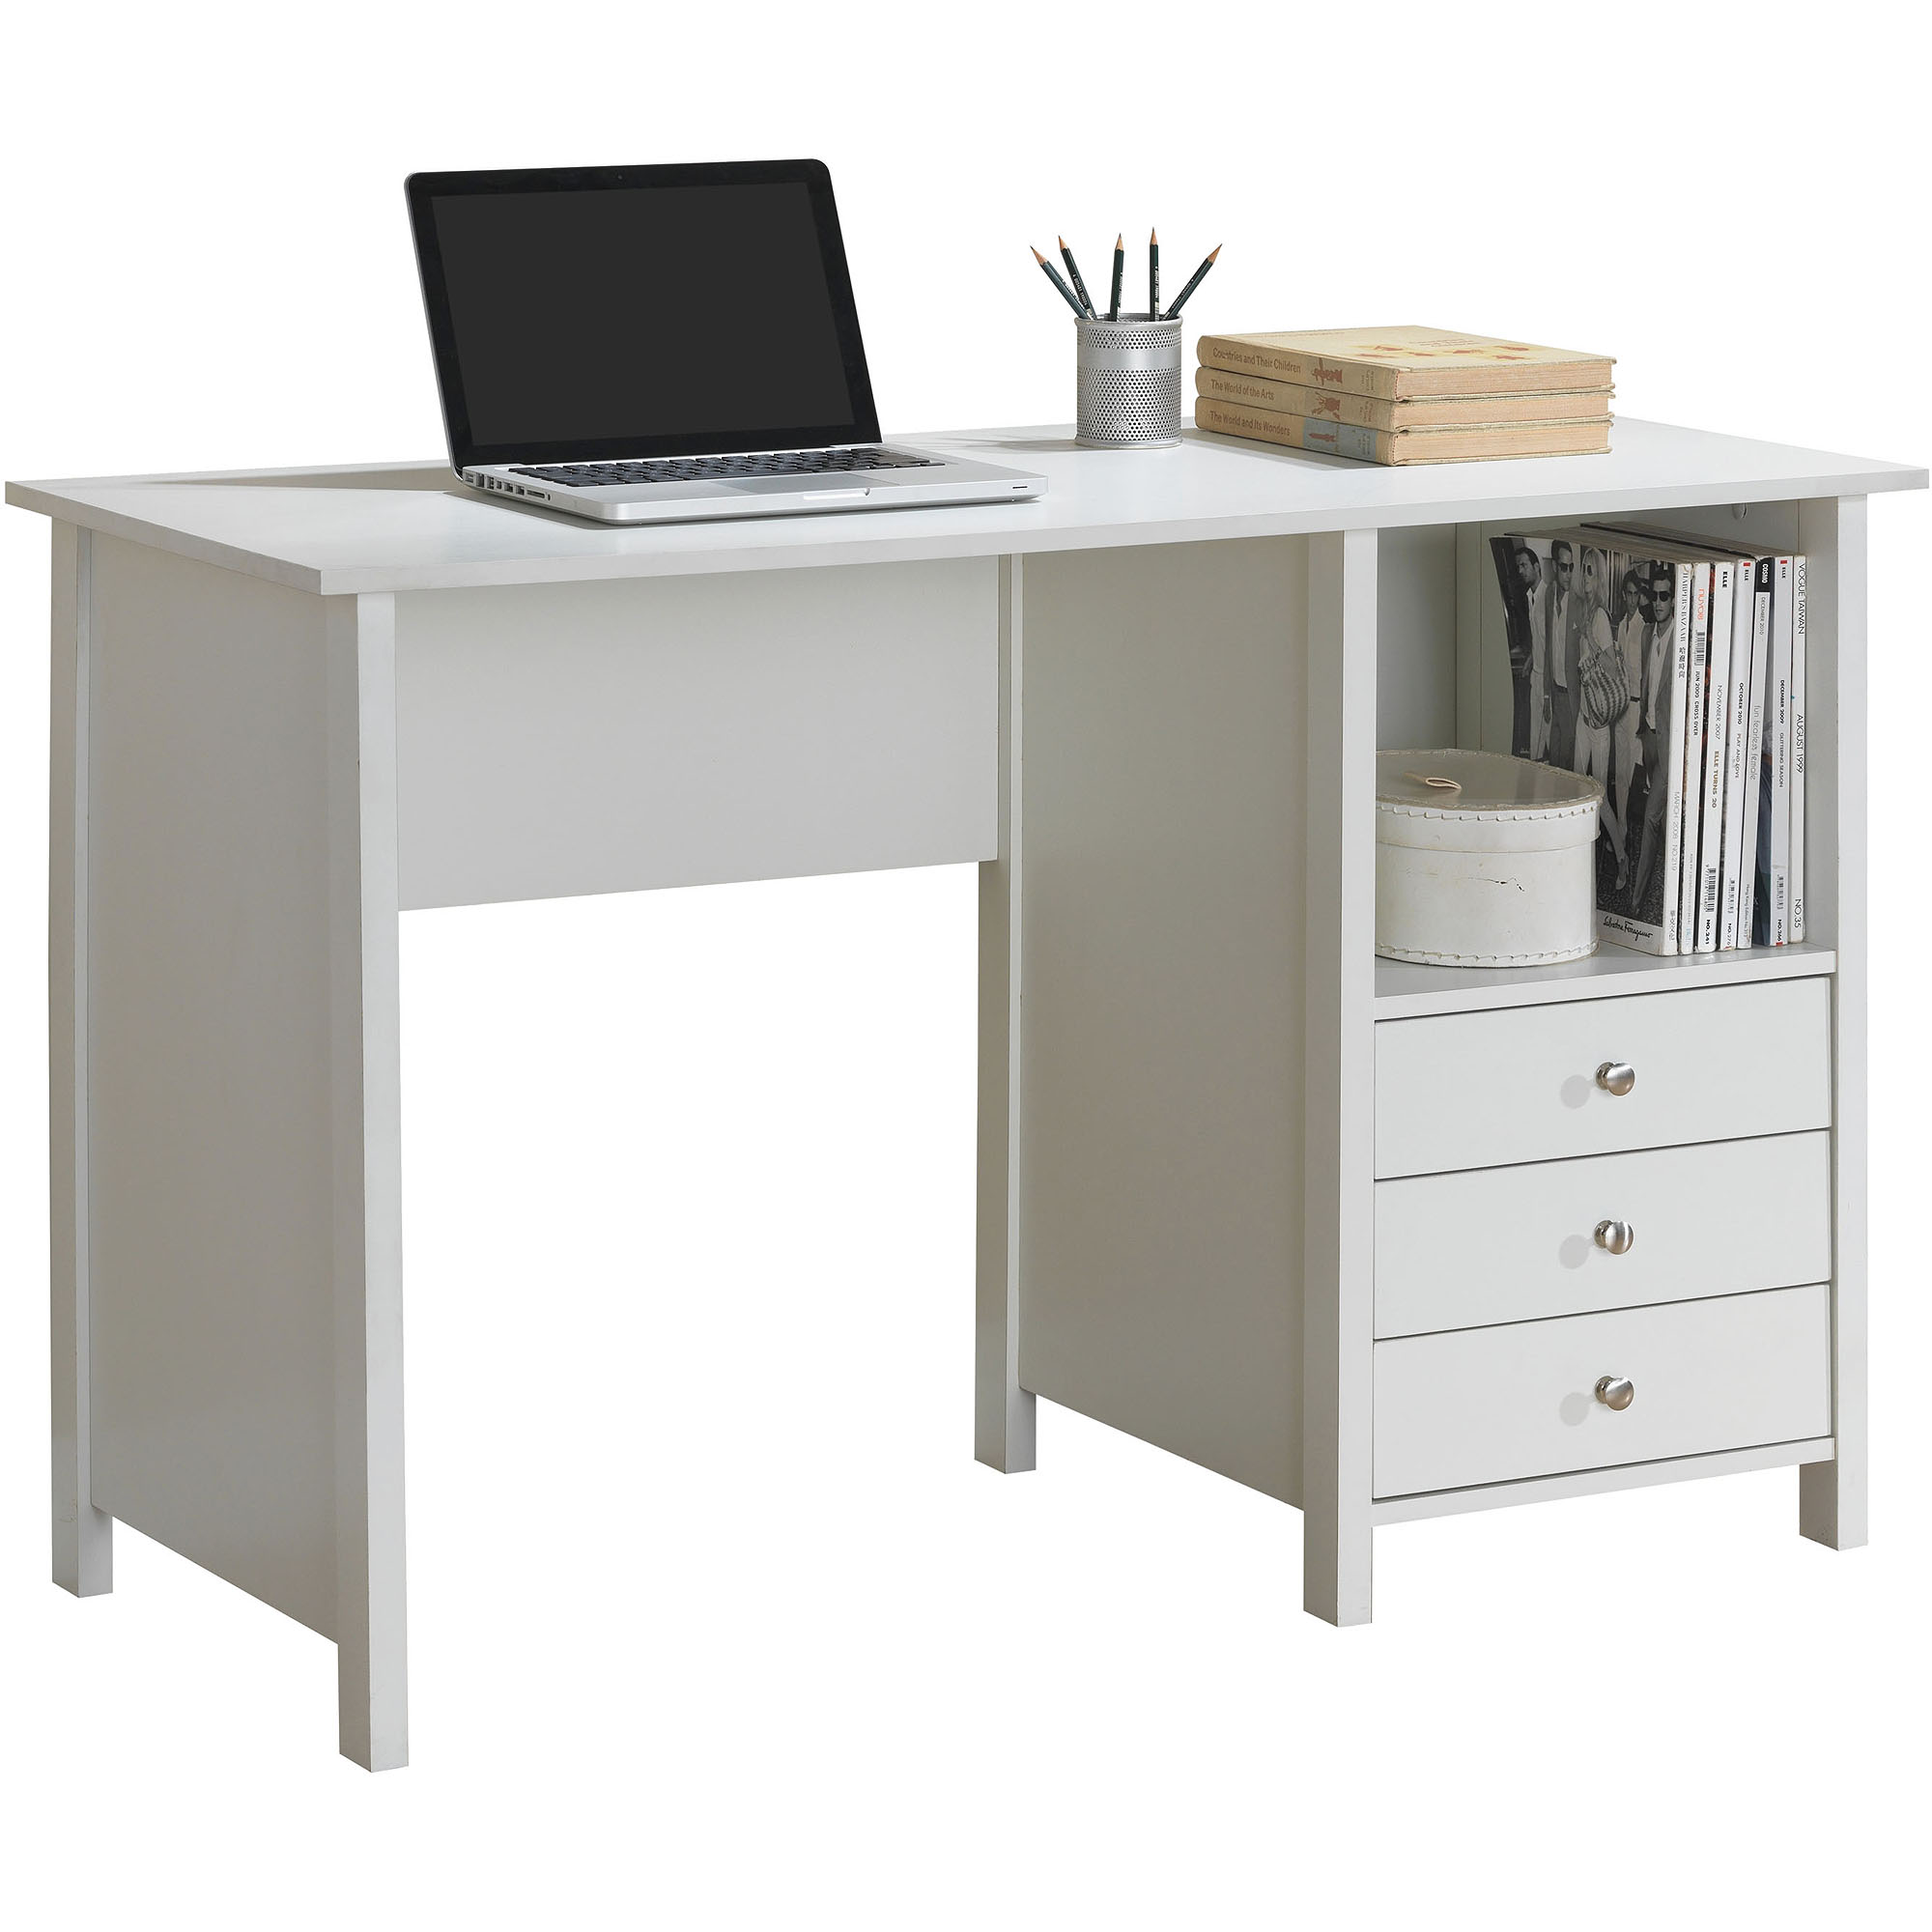 walmart office furniture. Modren Furniture To Walmart Office Furniture O